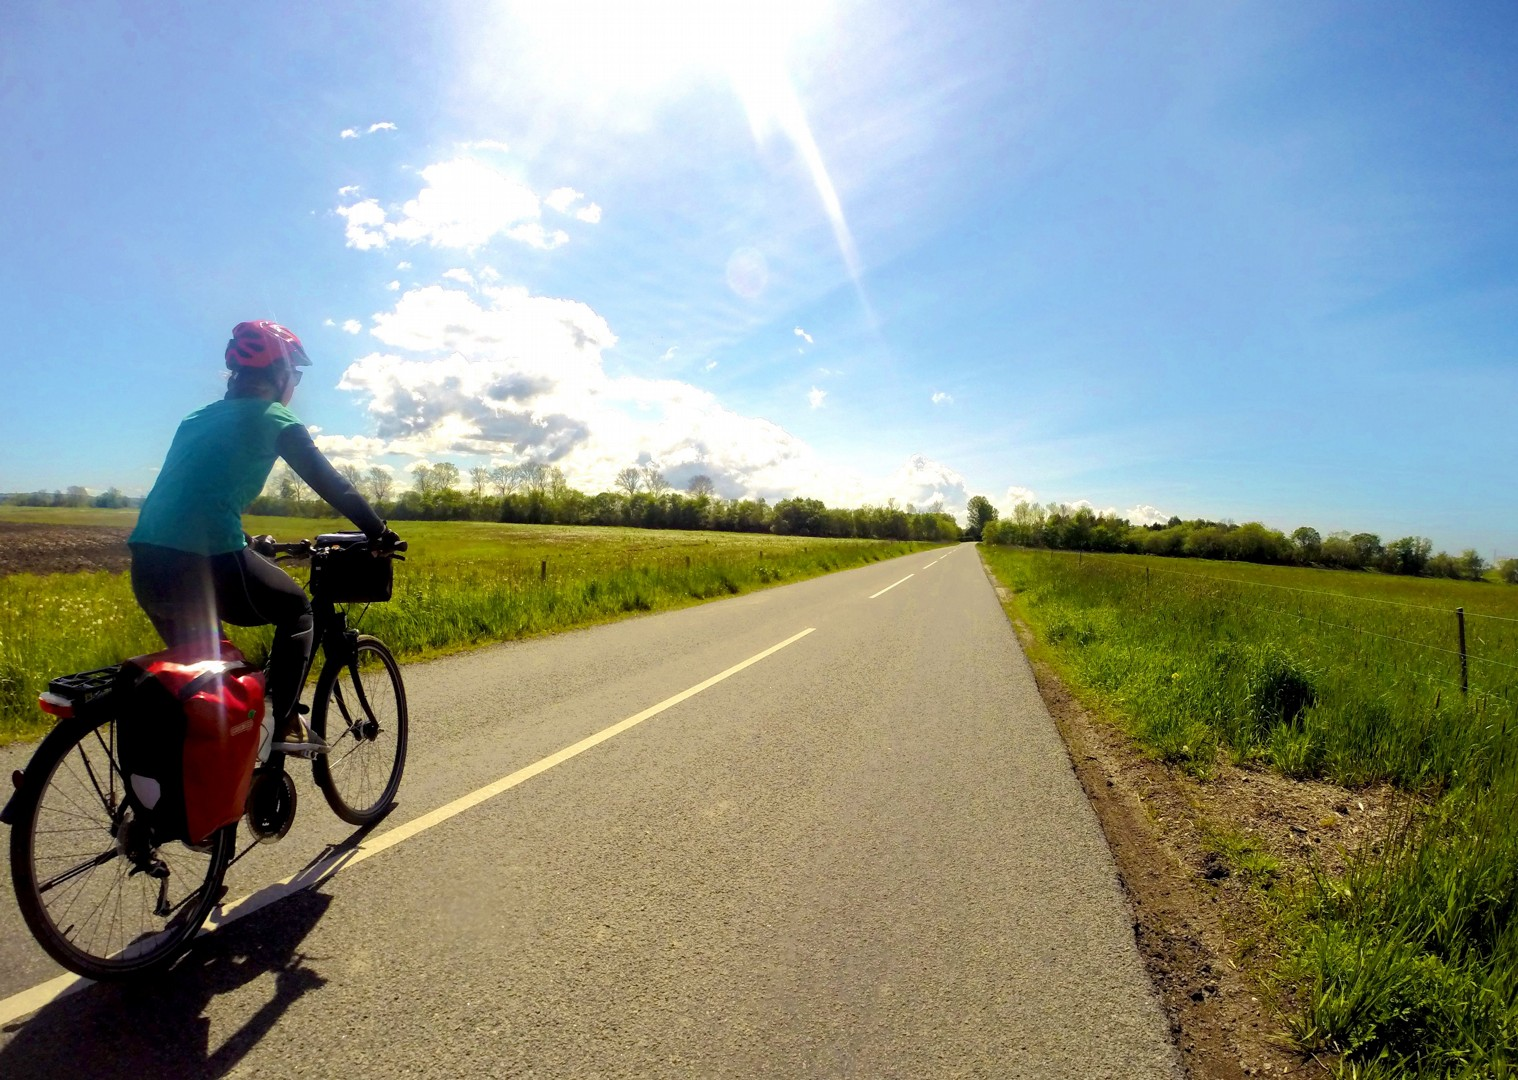 denmark-parents-cycling-flat-roads-family-skedaddle.jpg - Denmark - Zooming Through Zealand - Self-Guided Family Cycling Holiday - Family Cycling